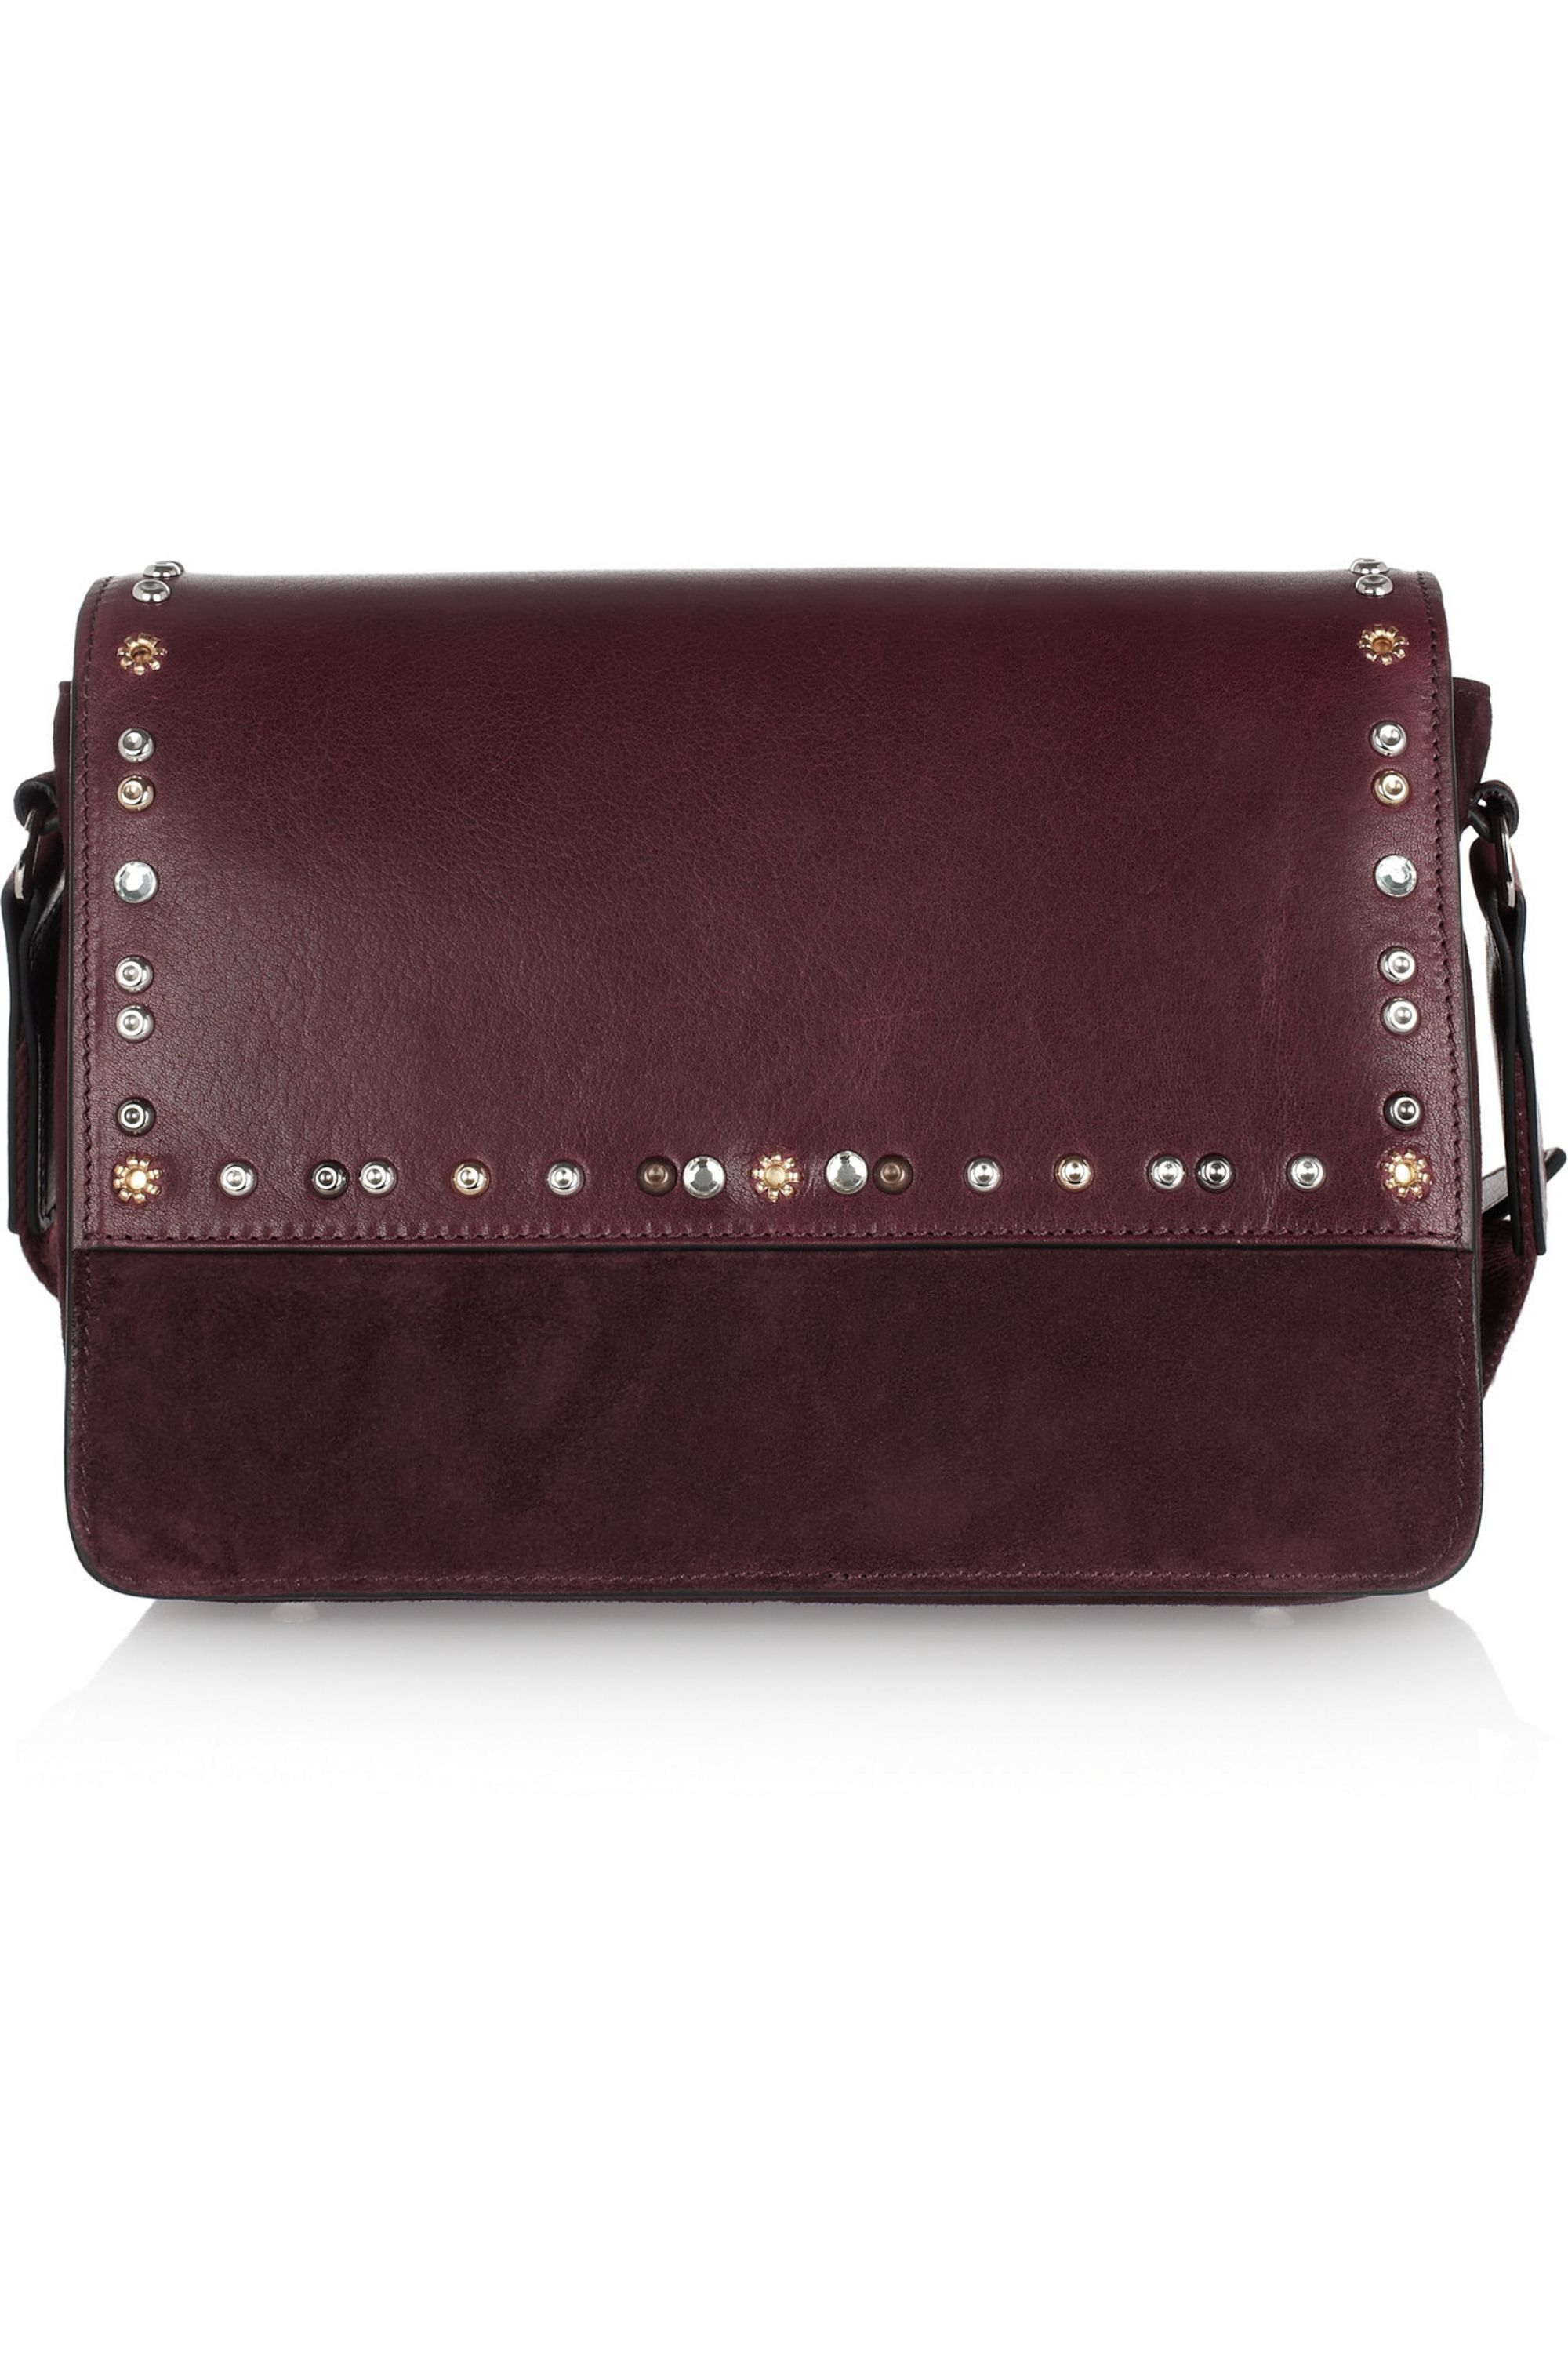 Isabel Marant Laura studded leather and suede shoulder bag